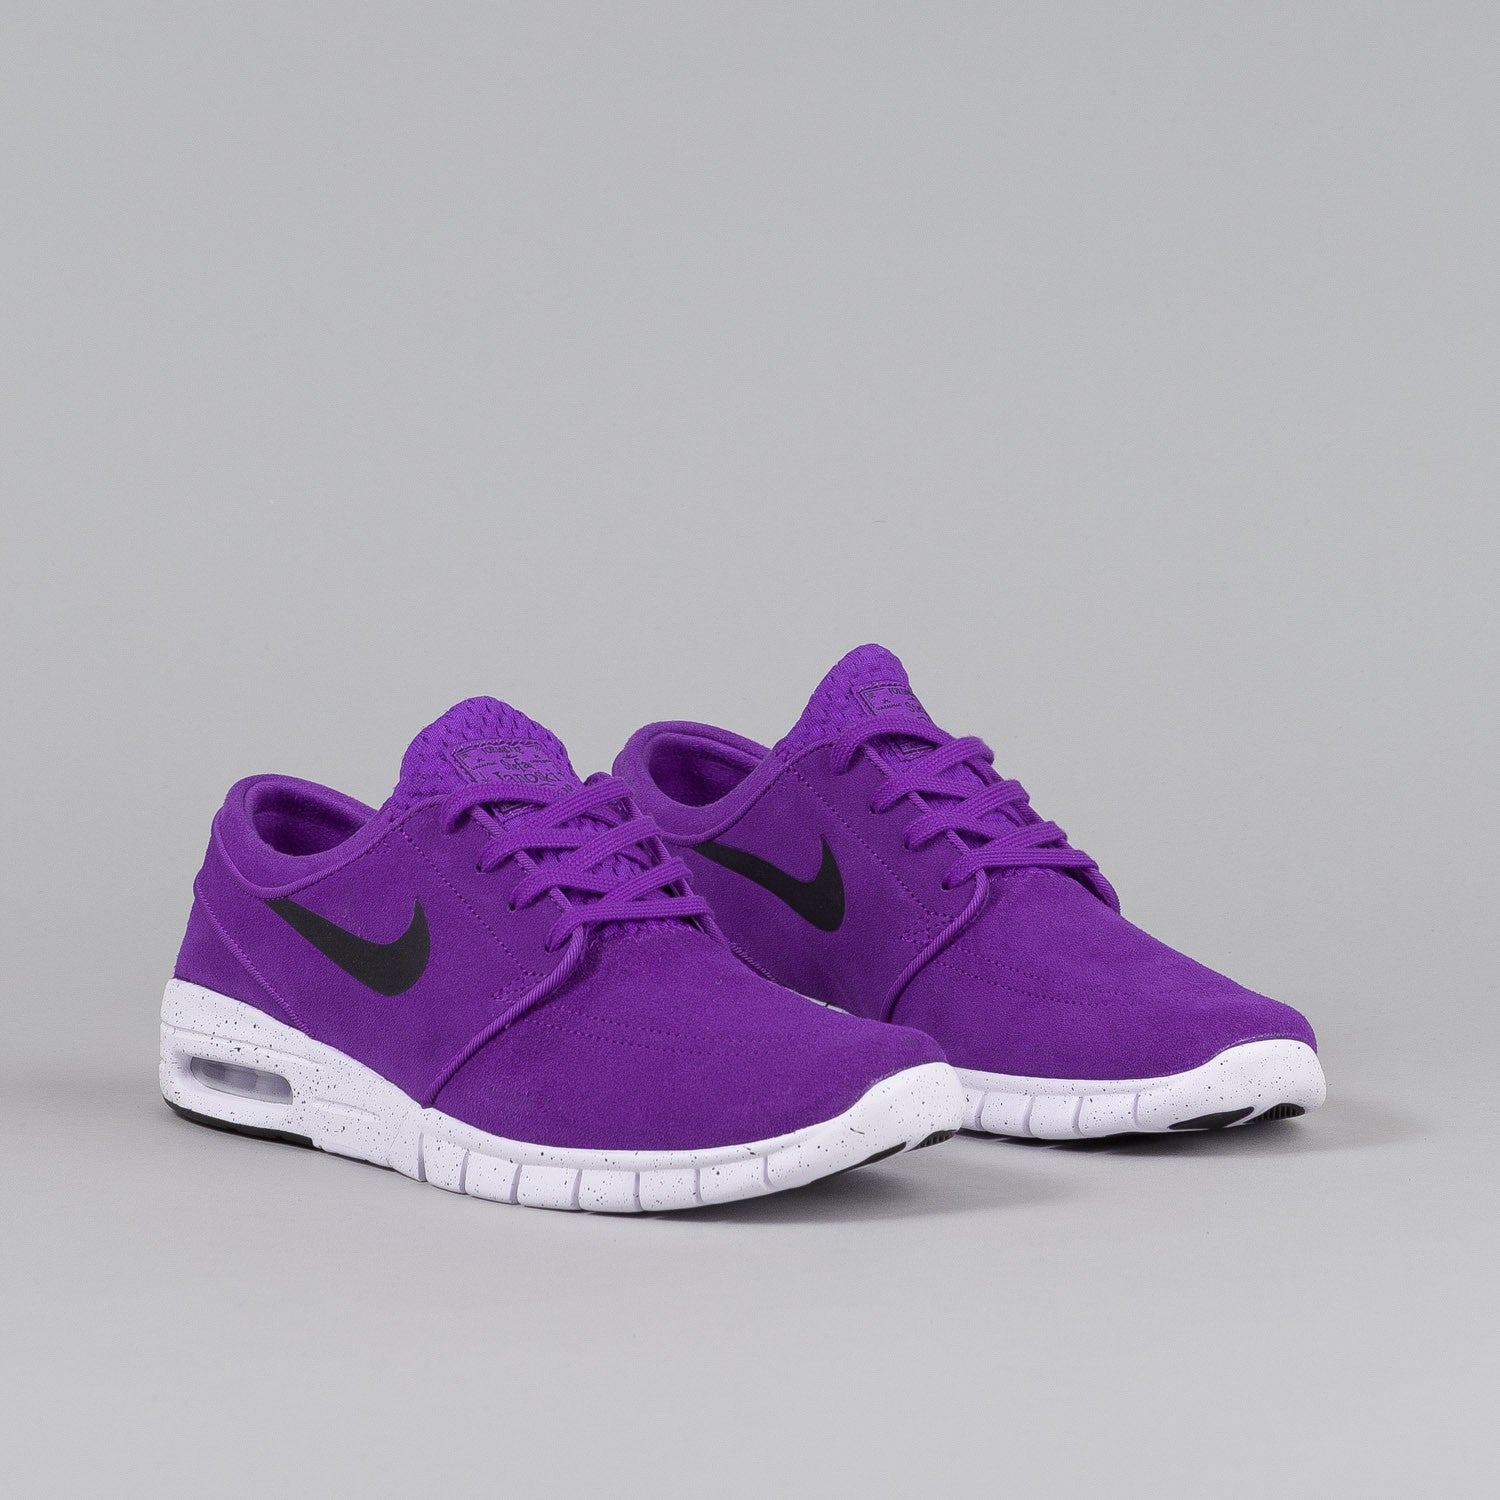 Nike SB Stefan Janoski Max L Hyper Grape/Black - White